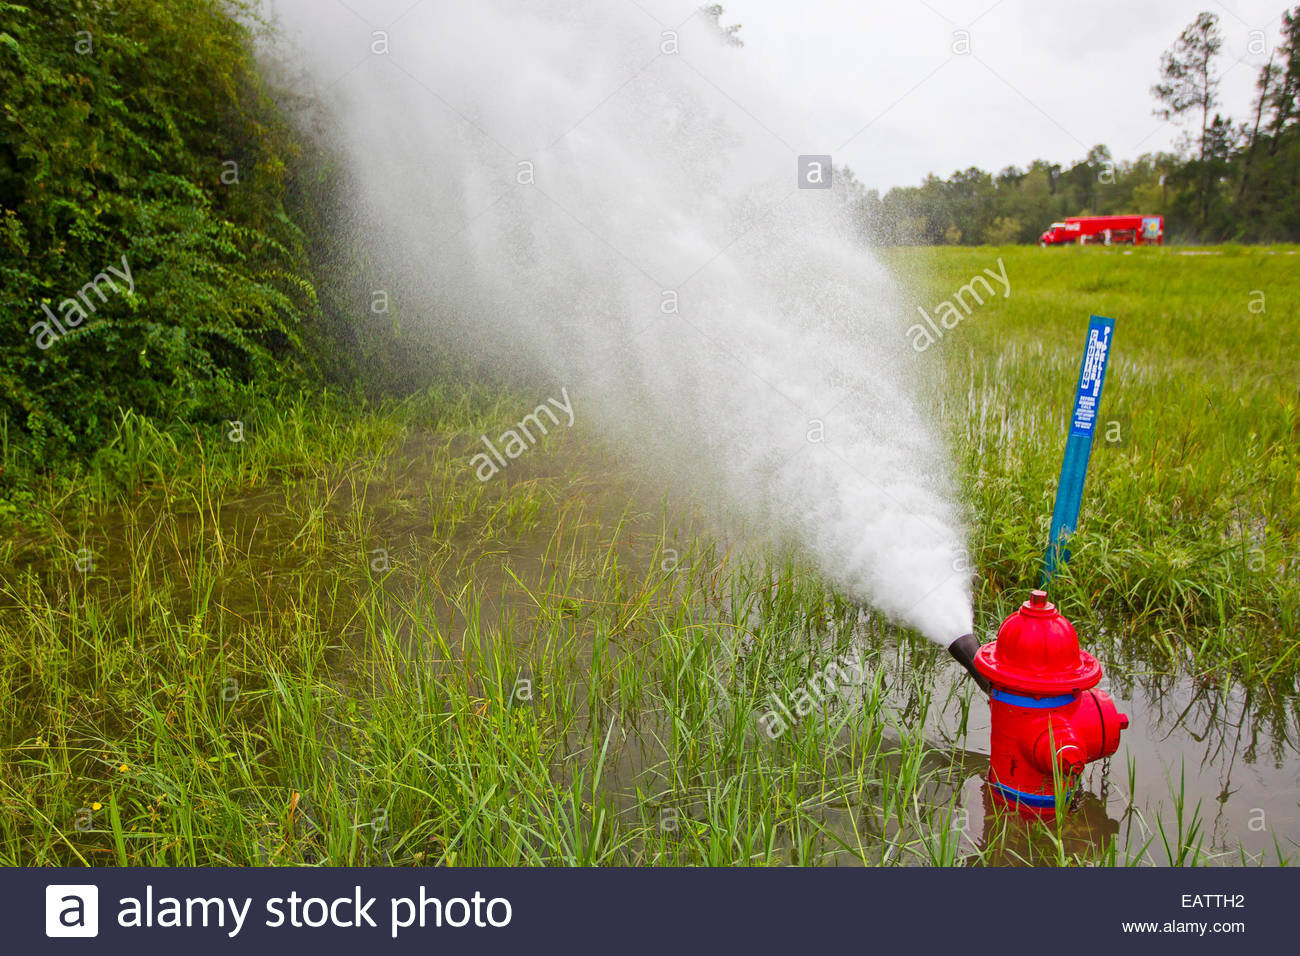 A fire hydrant releases water pressure from heavy rains due to Hurricane Isaac. Stock Photo